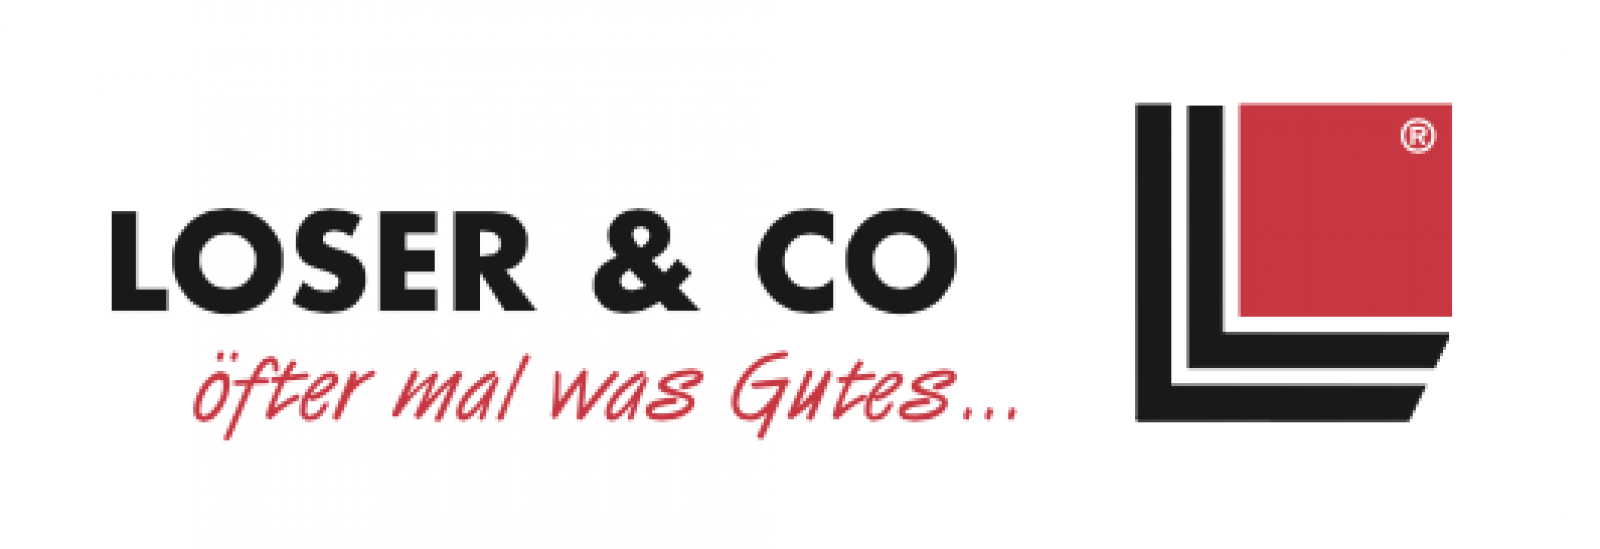 Loser & Co logo